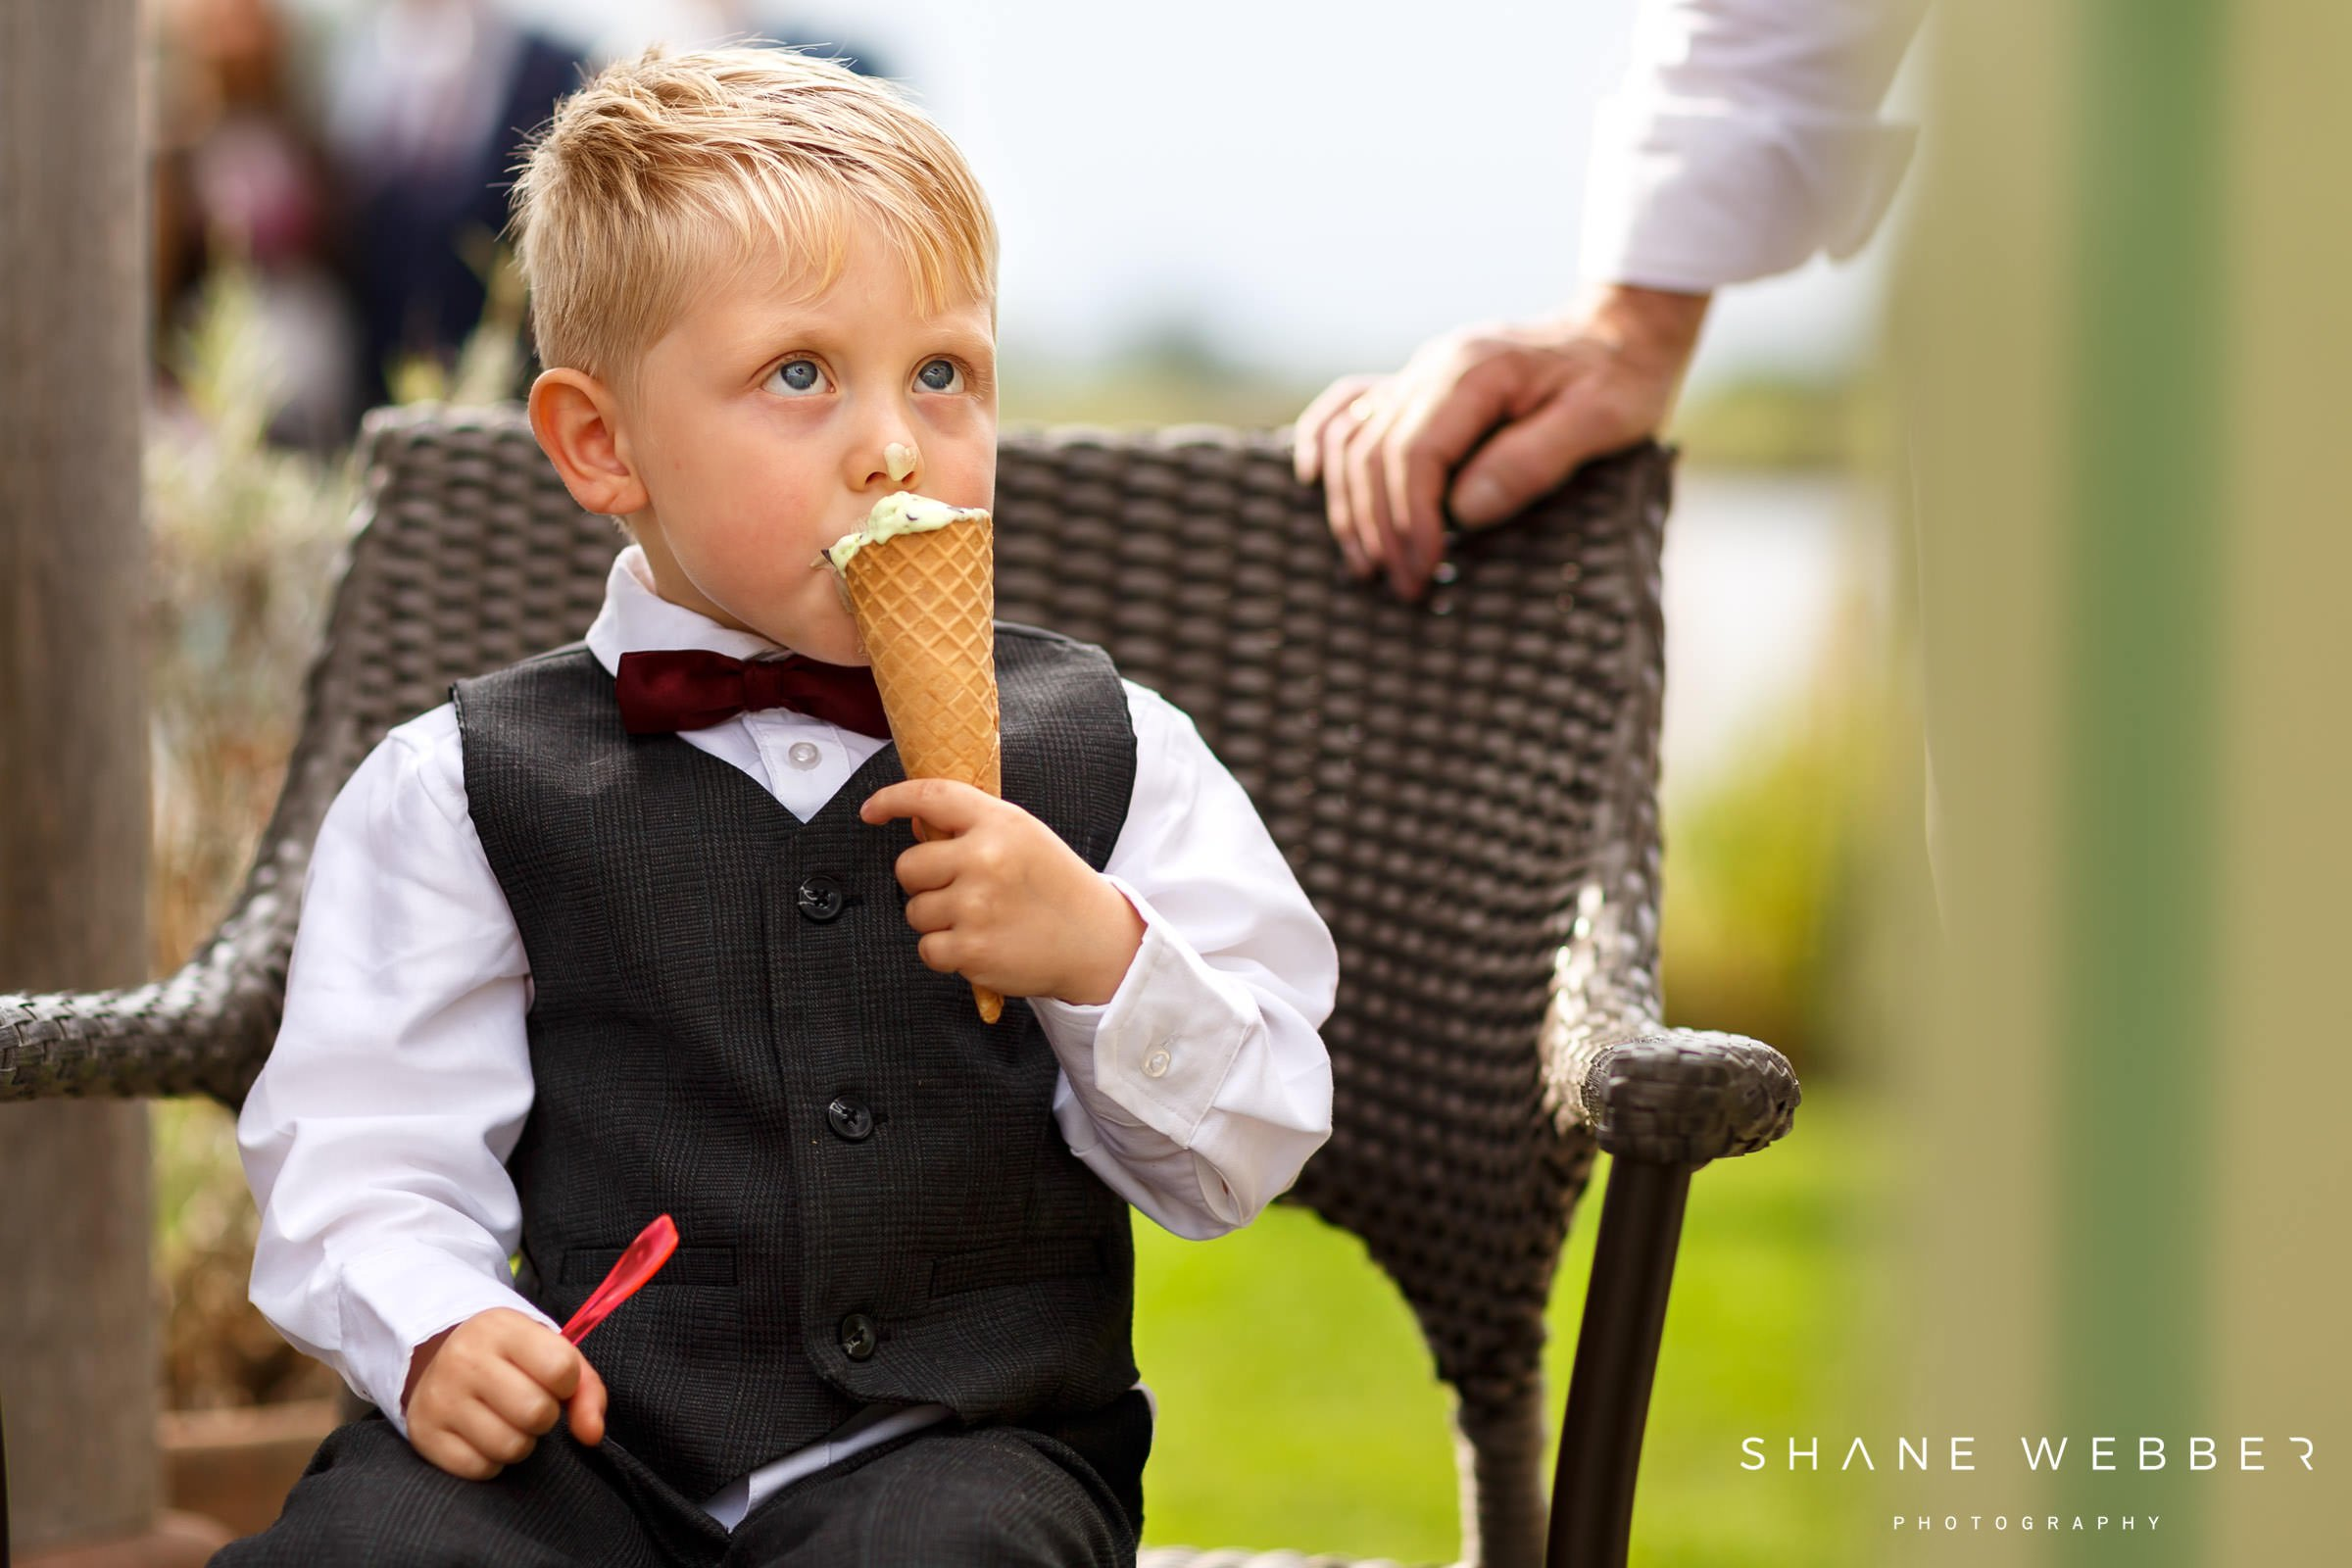 paige boy eats ice cream at wedding